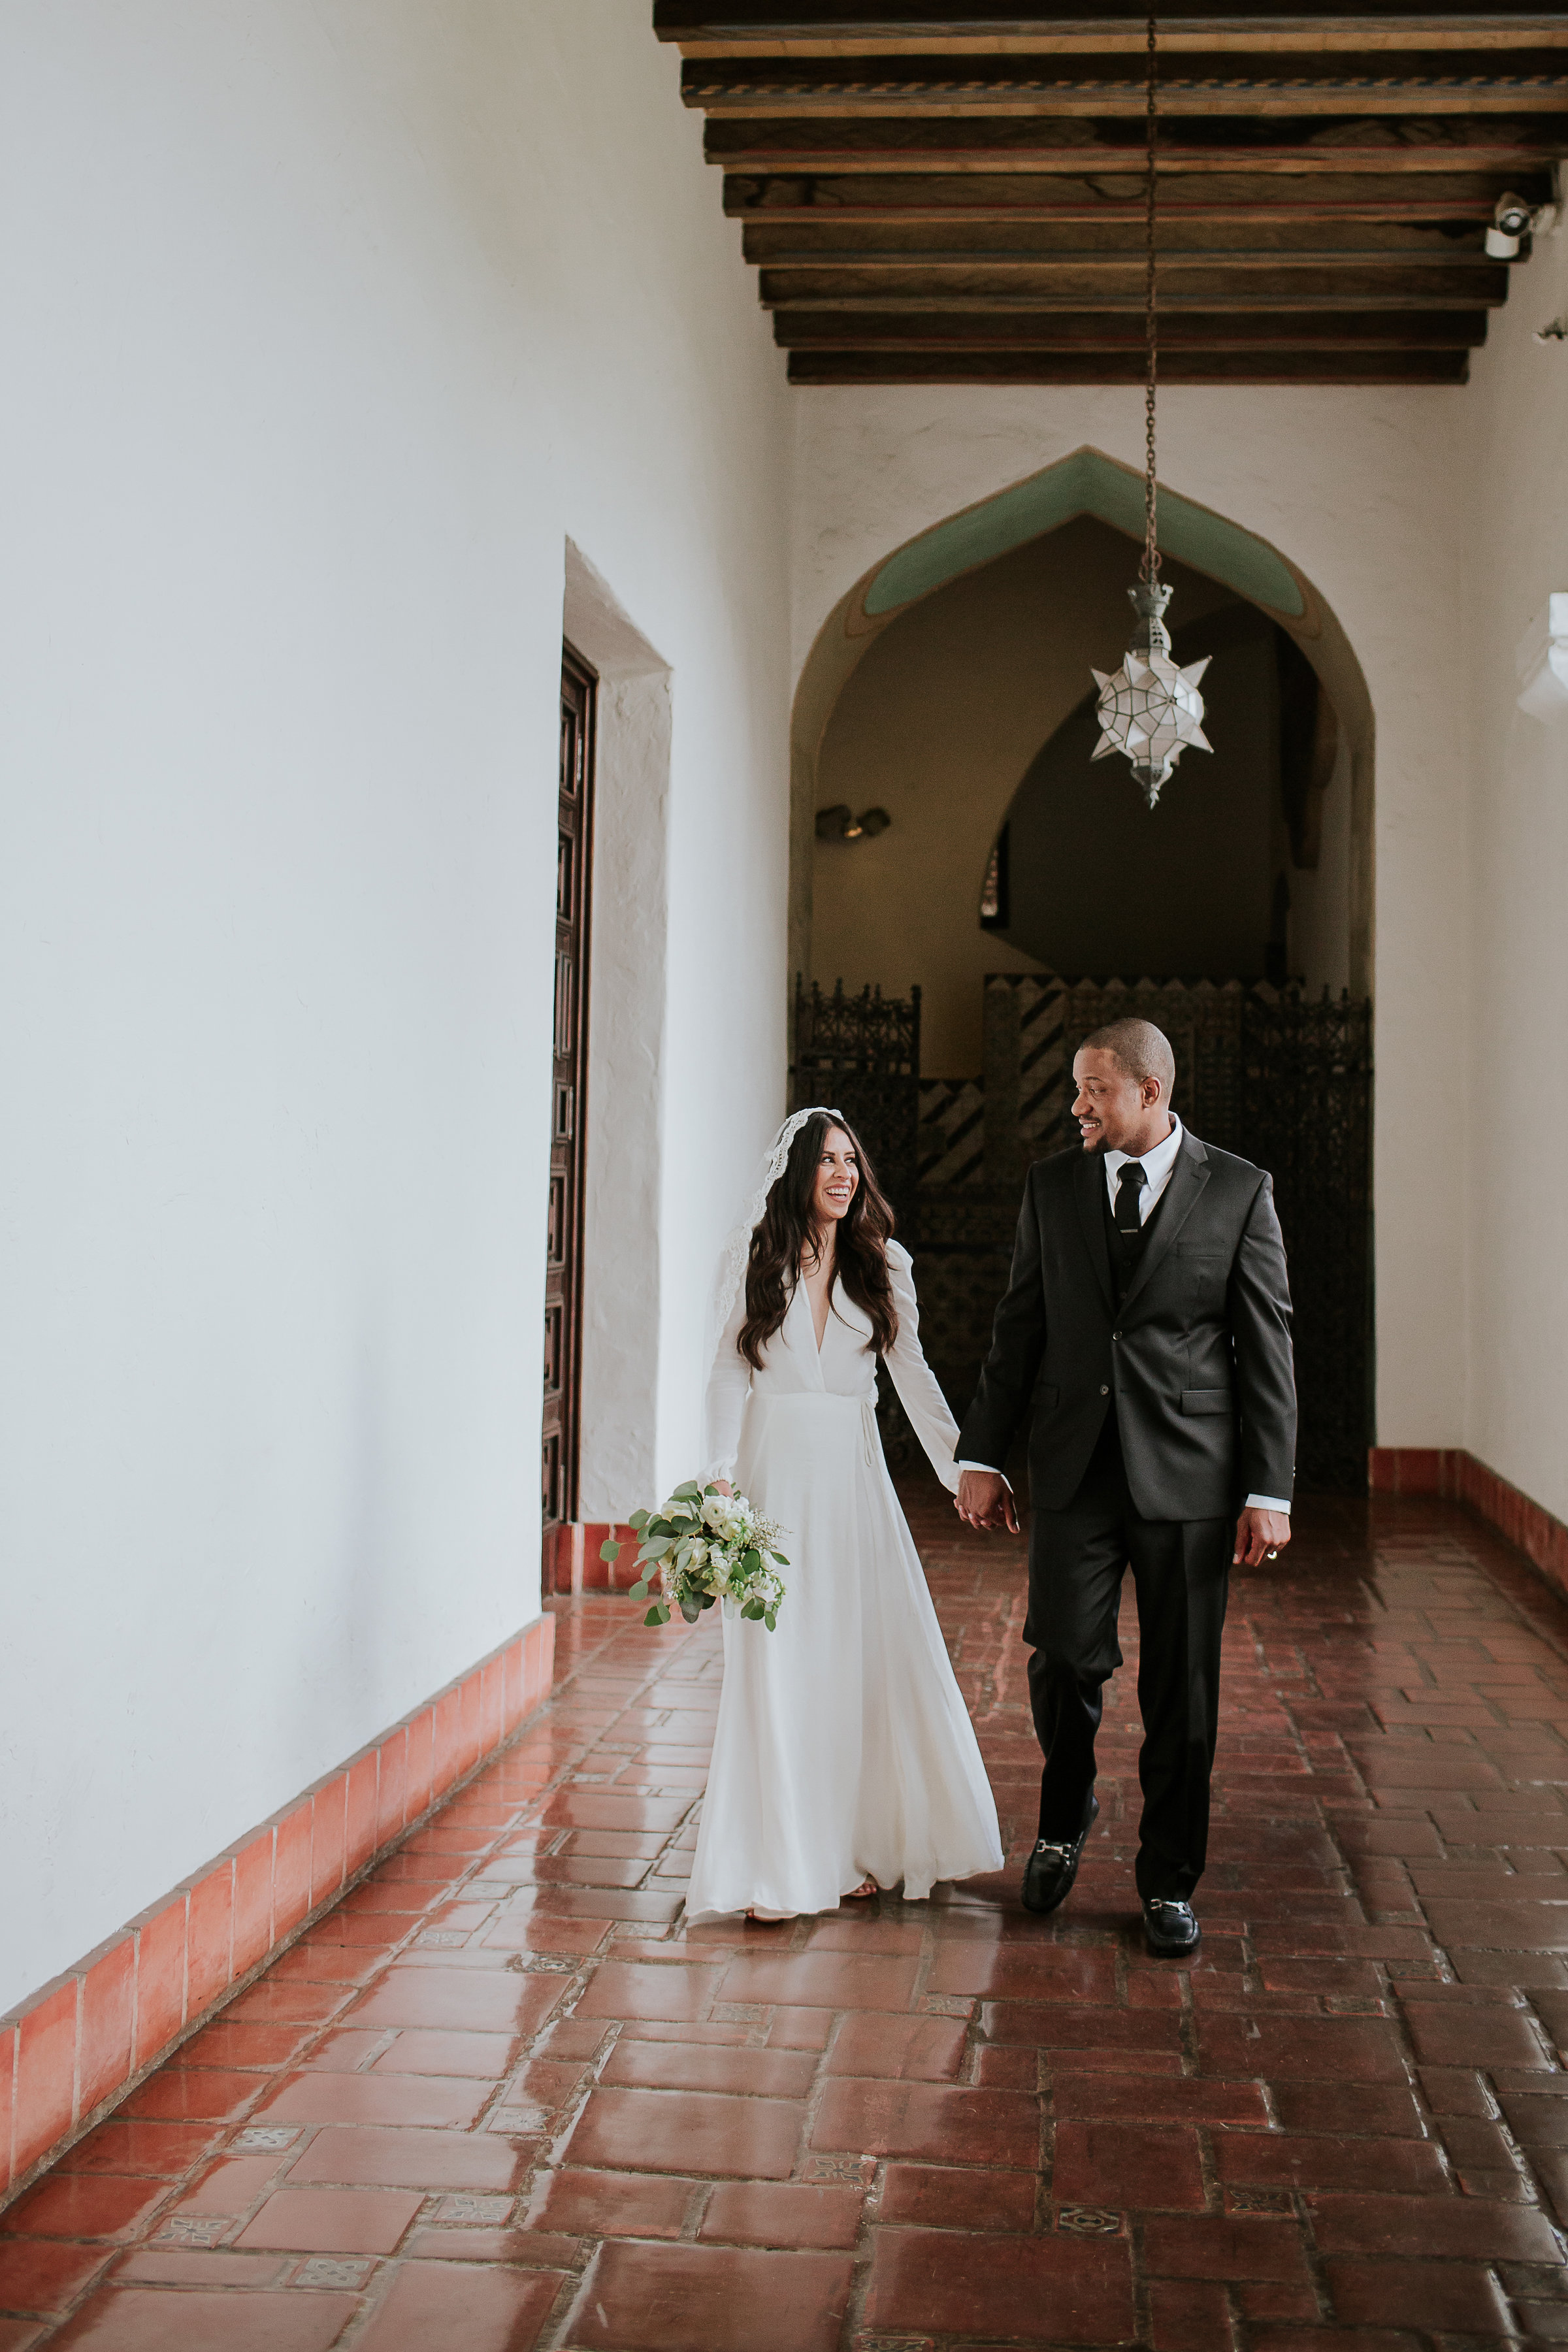 GabrielaandDeJuansantabarbaracourthouseweddingstellamaresweddingelopement-243.jpg